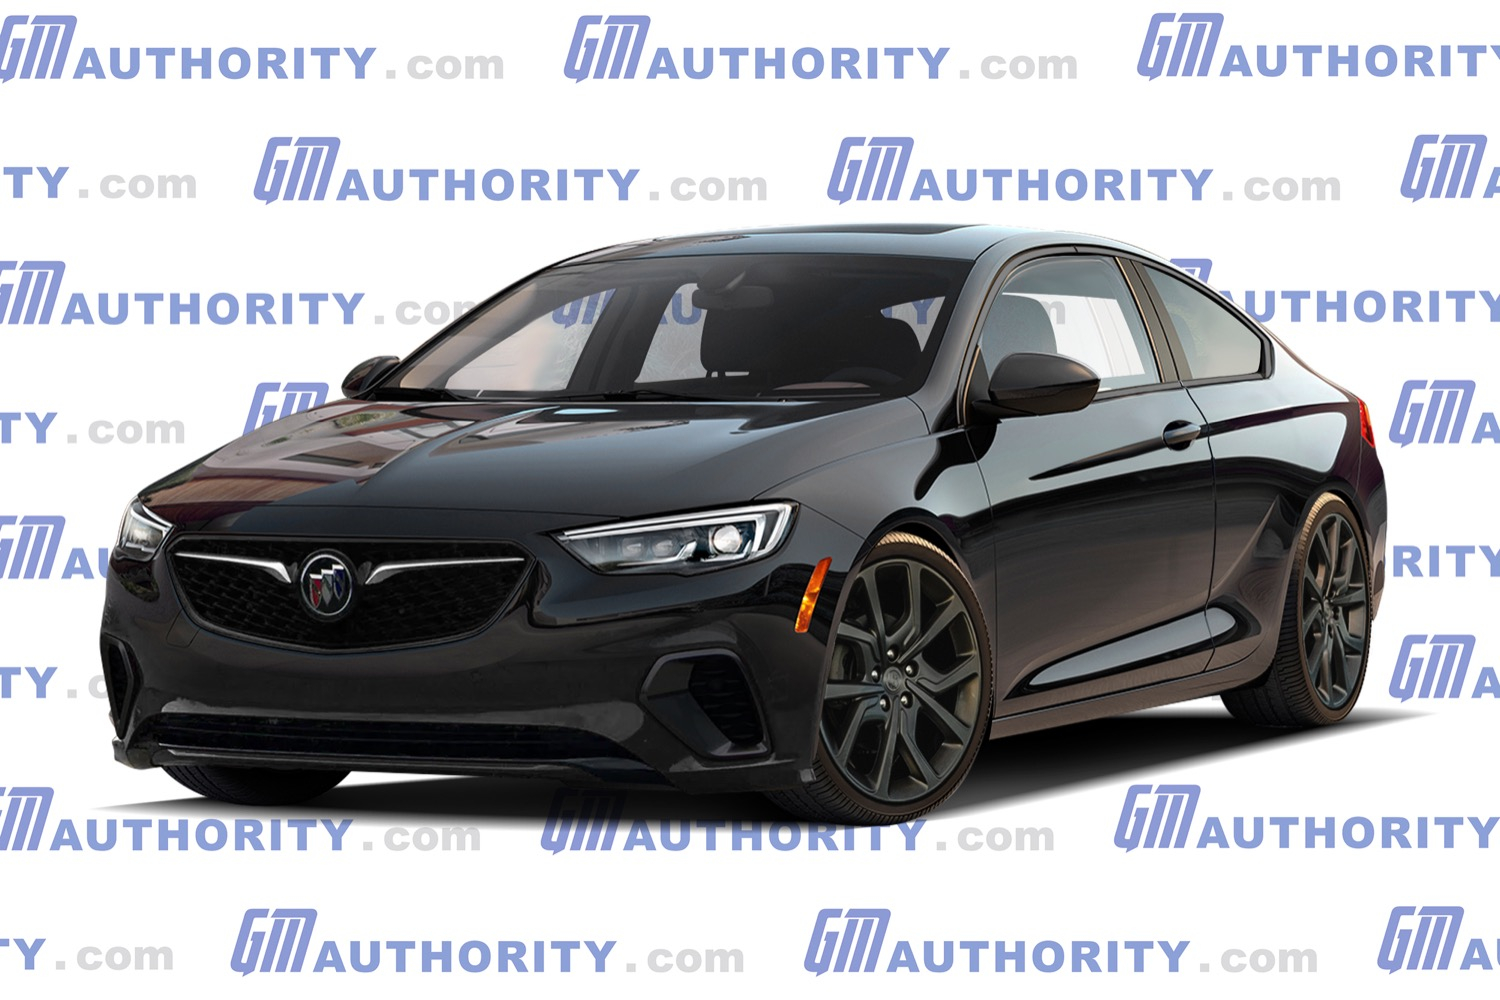 Modern Buick Regal Gnx Rendered | Gm Authority 2022 Buick Regal Production, Pictures, Price